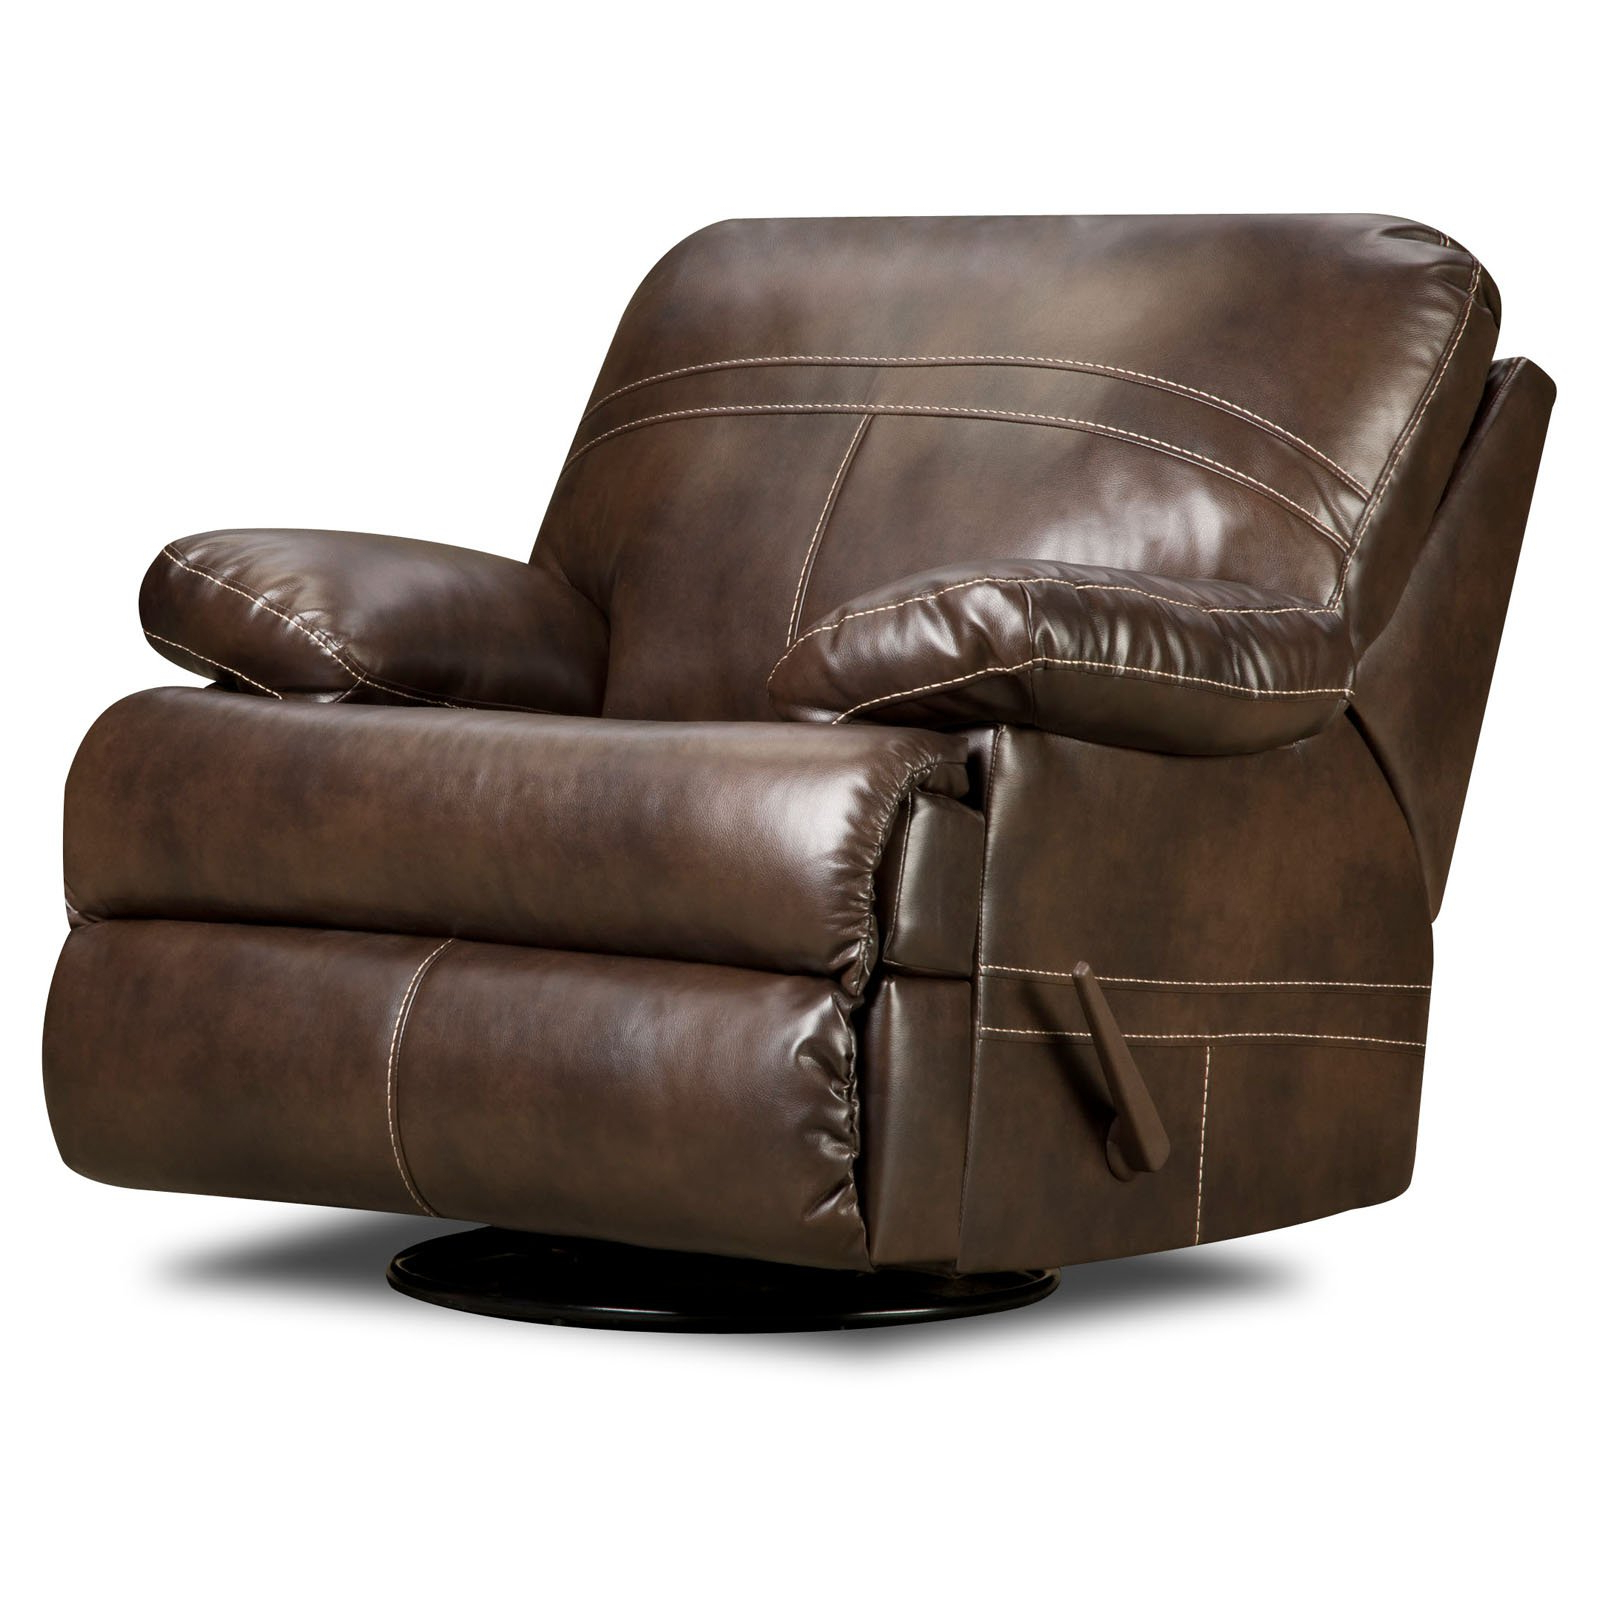 Rogan Leather Cafe Latte Swivel Glider Recliners Within Preferred Furniture: Surprising Simmons Recliners For Contemporary Living Room (View 8 of 20)